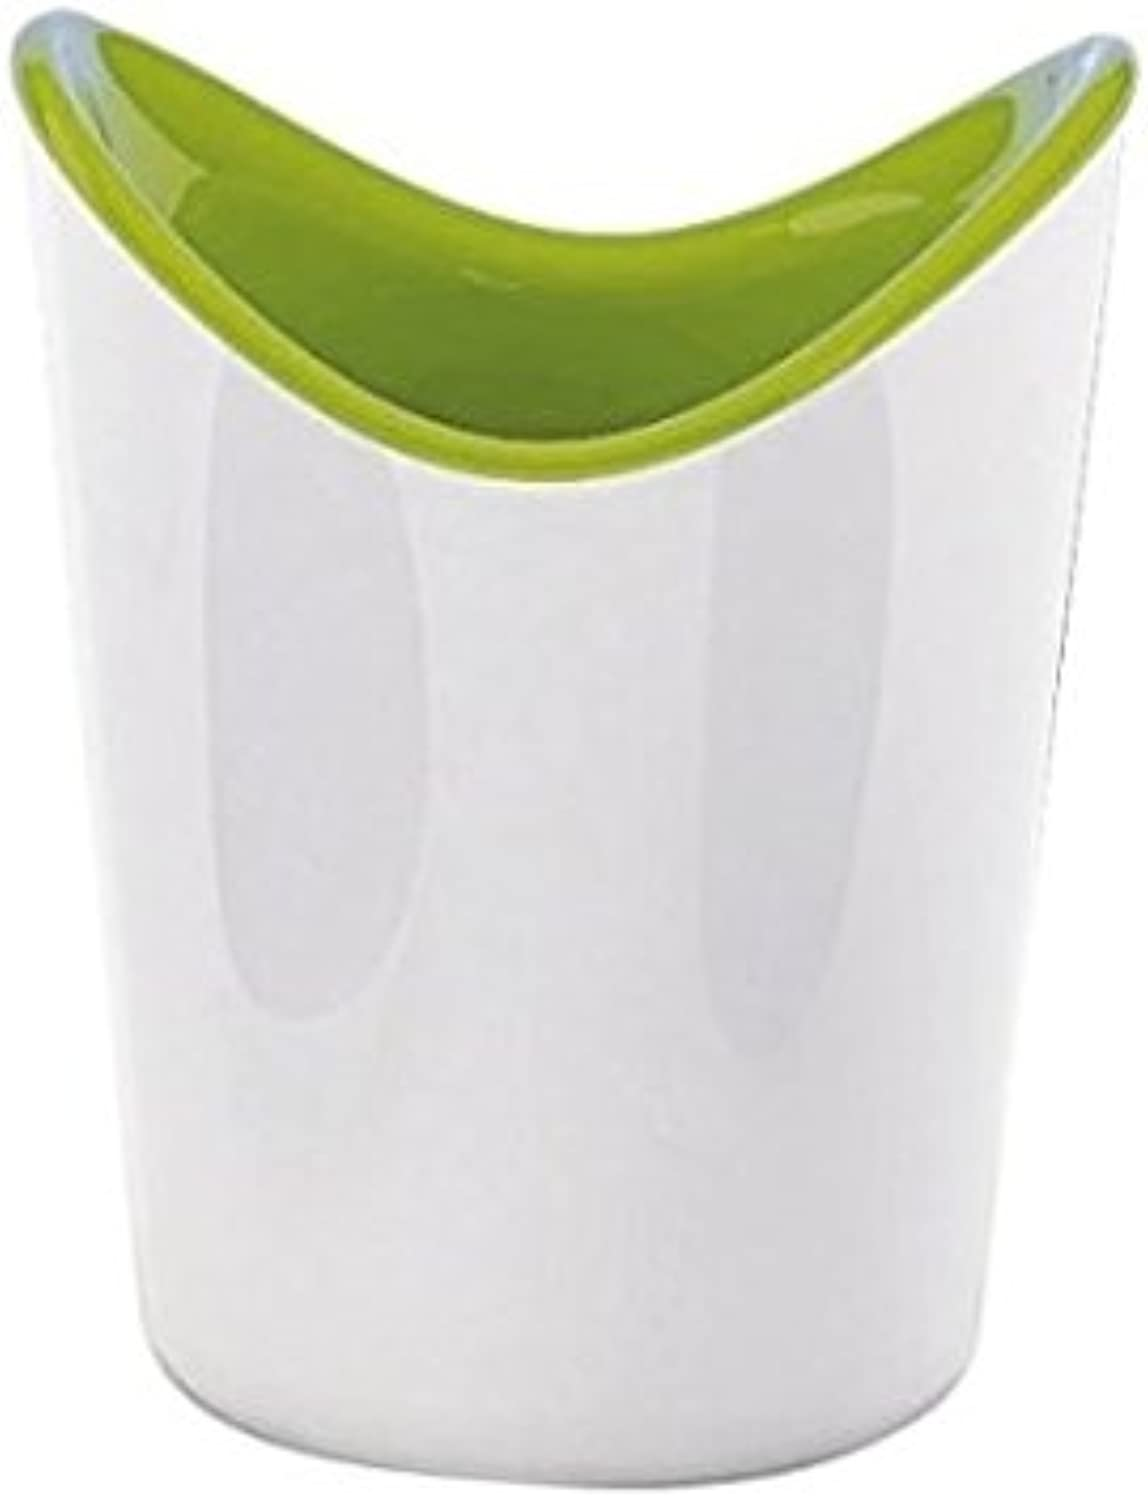 Gedy Gedy 3198-60 Tooth Brush Holder, 1  L x 3.39  W